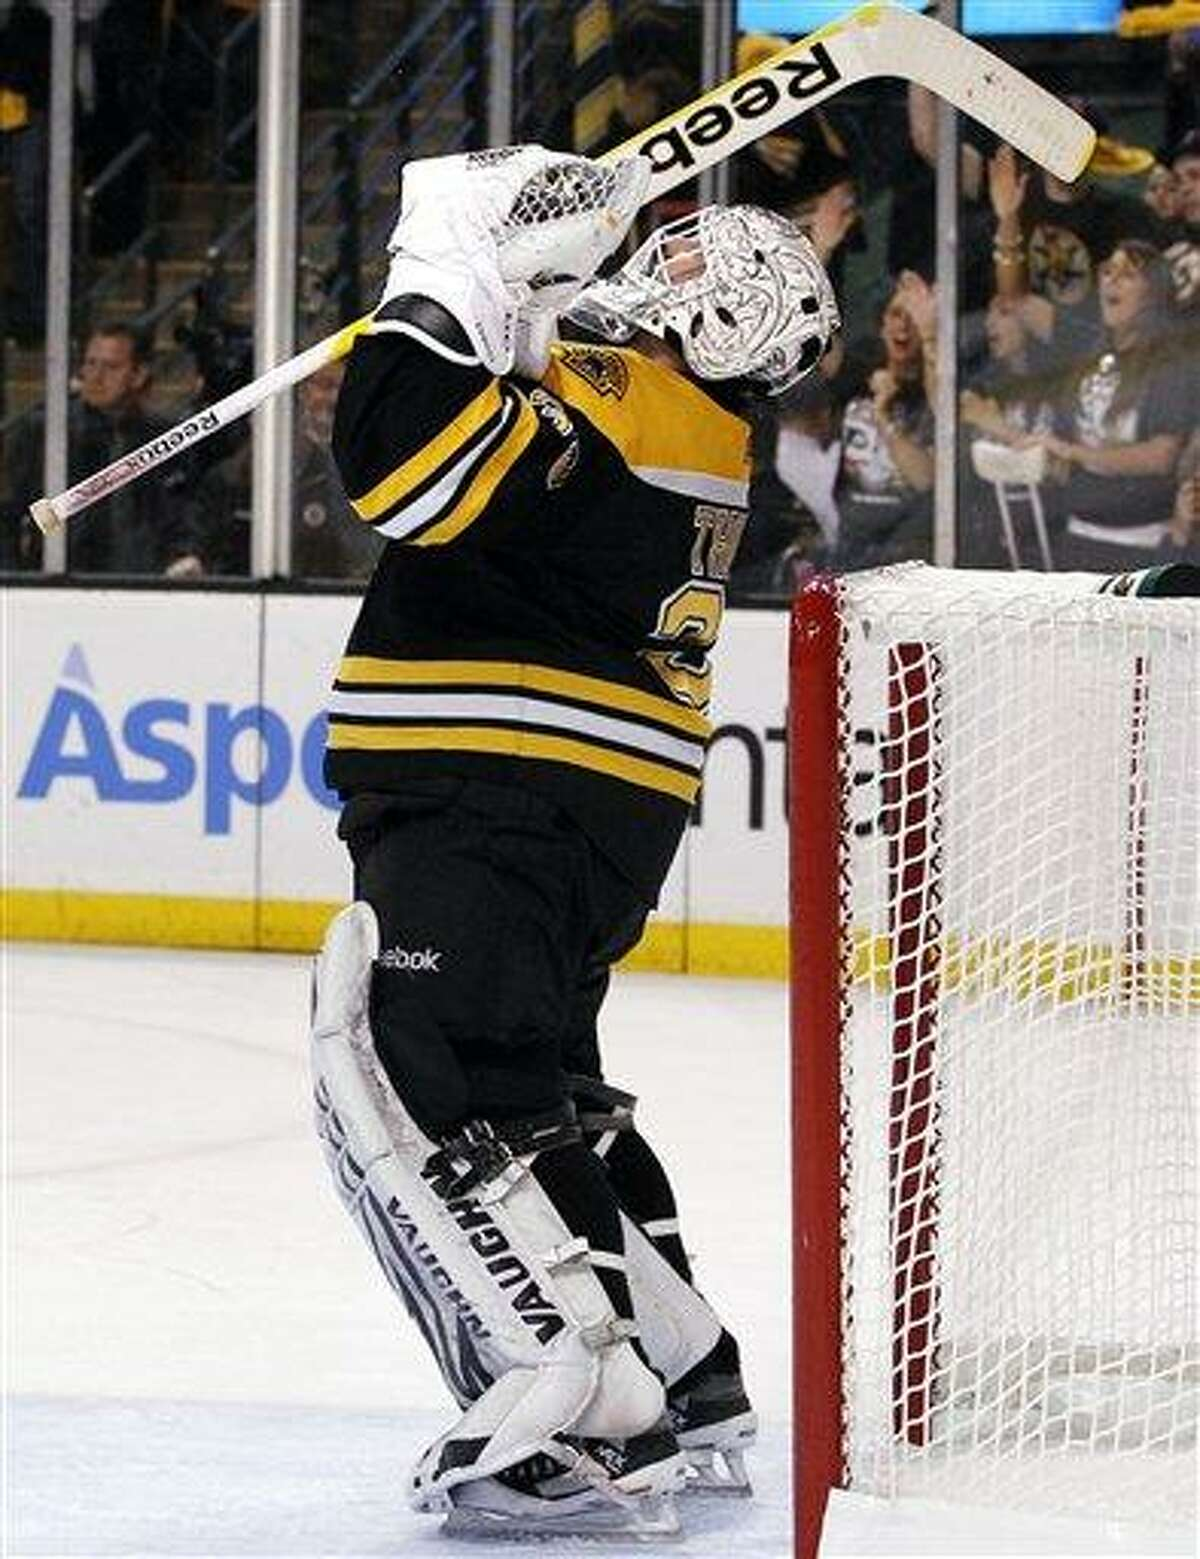 Boston Bruins goalie Tim Thomas celebrates after the Bruins defeated the Philadelphia Flyers 5-1 in Game 4 in a second-round NHL Stanley Cup hockey playoff series in Boston on Friday, May 6, 2011. The Bruins swept the series. (AP Photo/Elise Amendola)